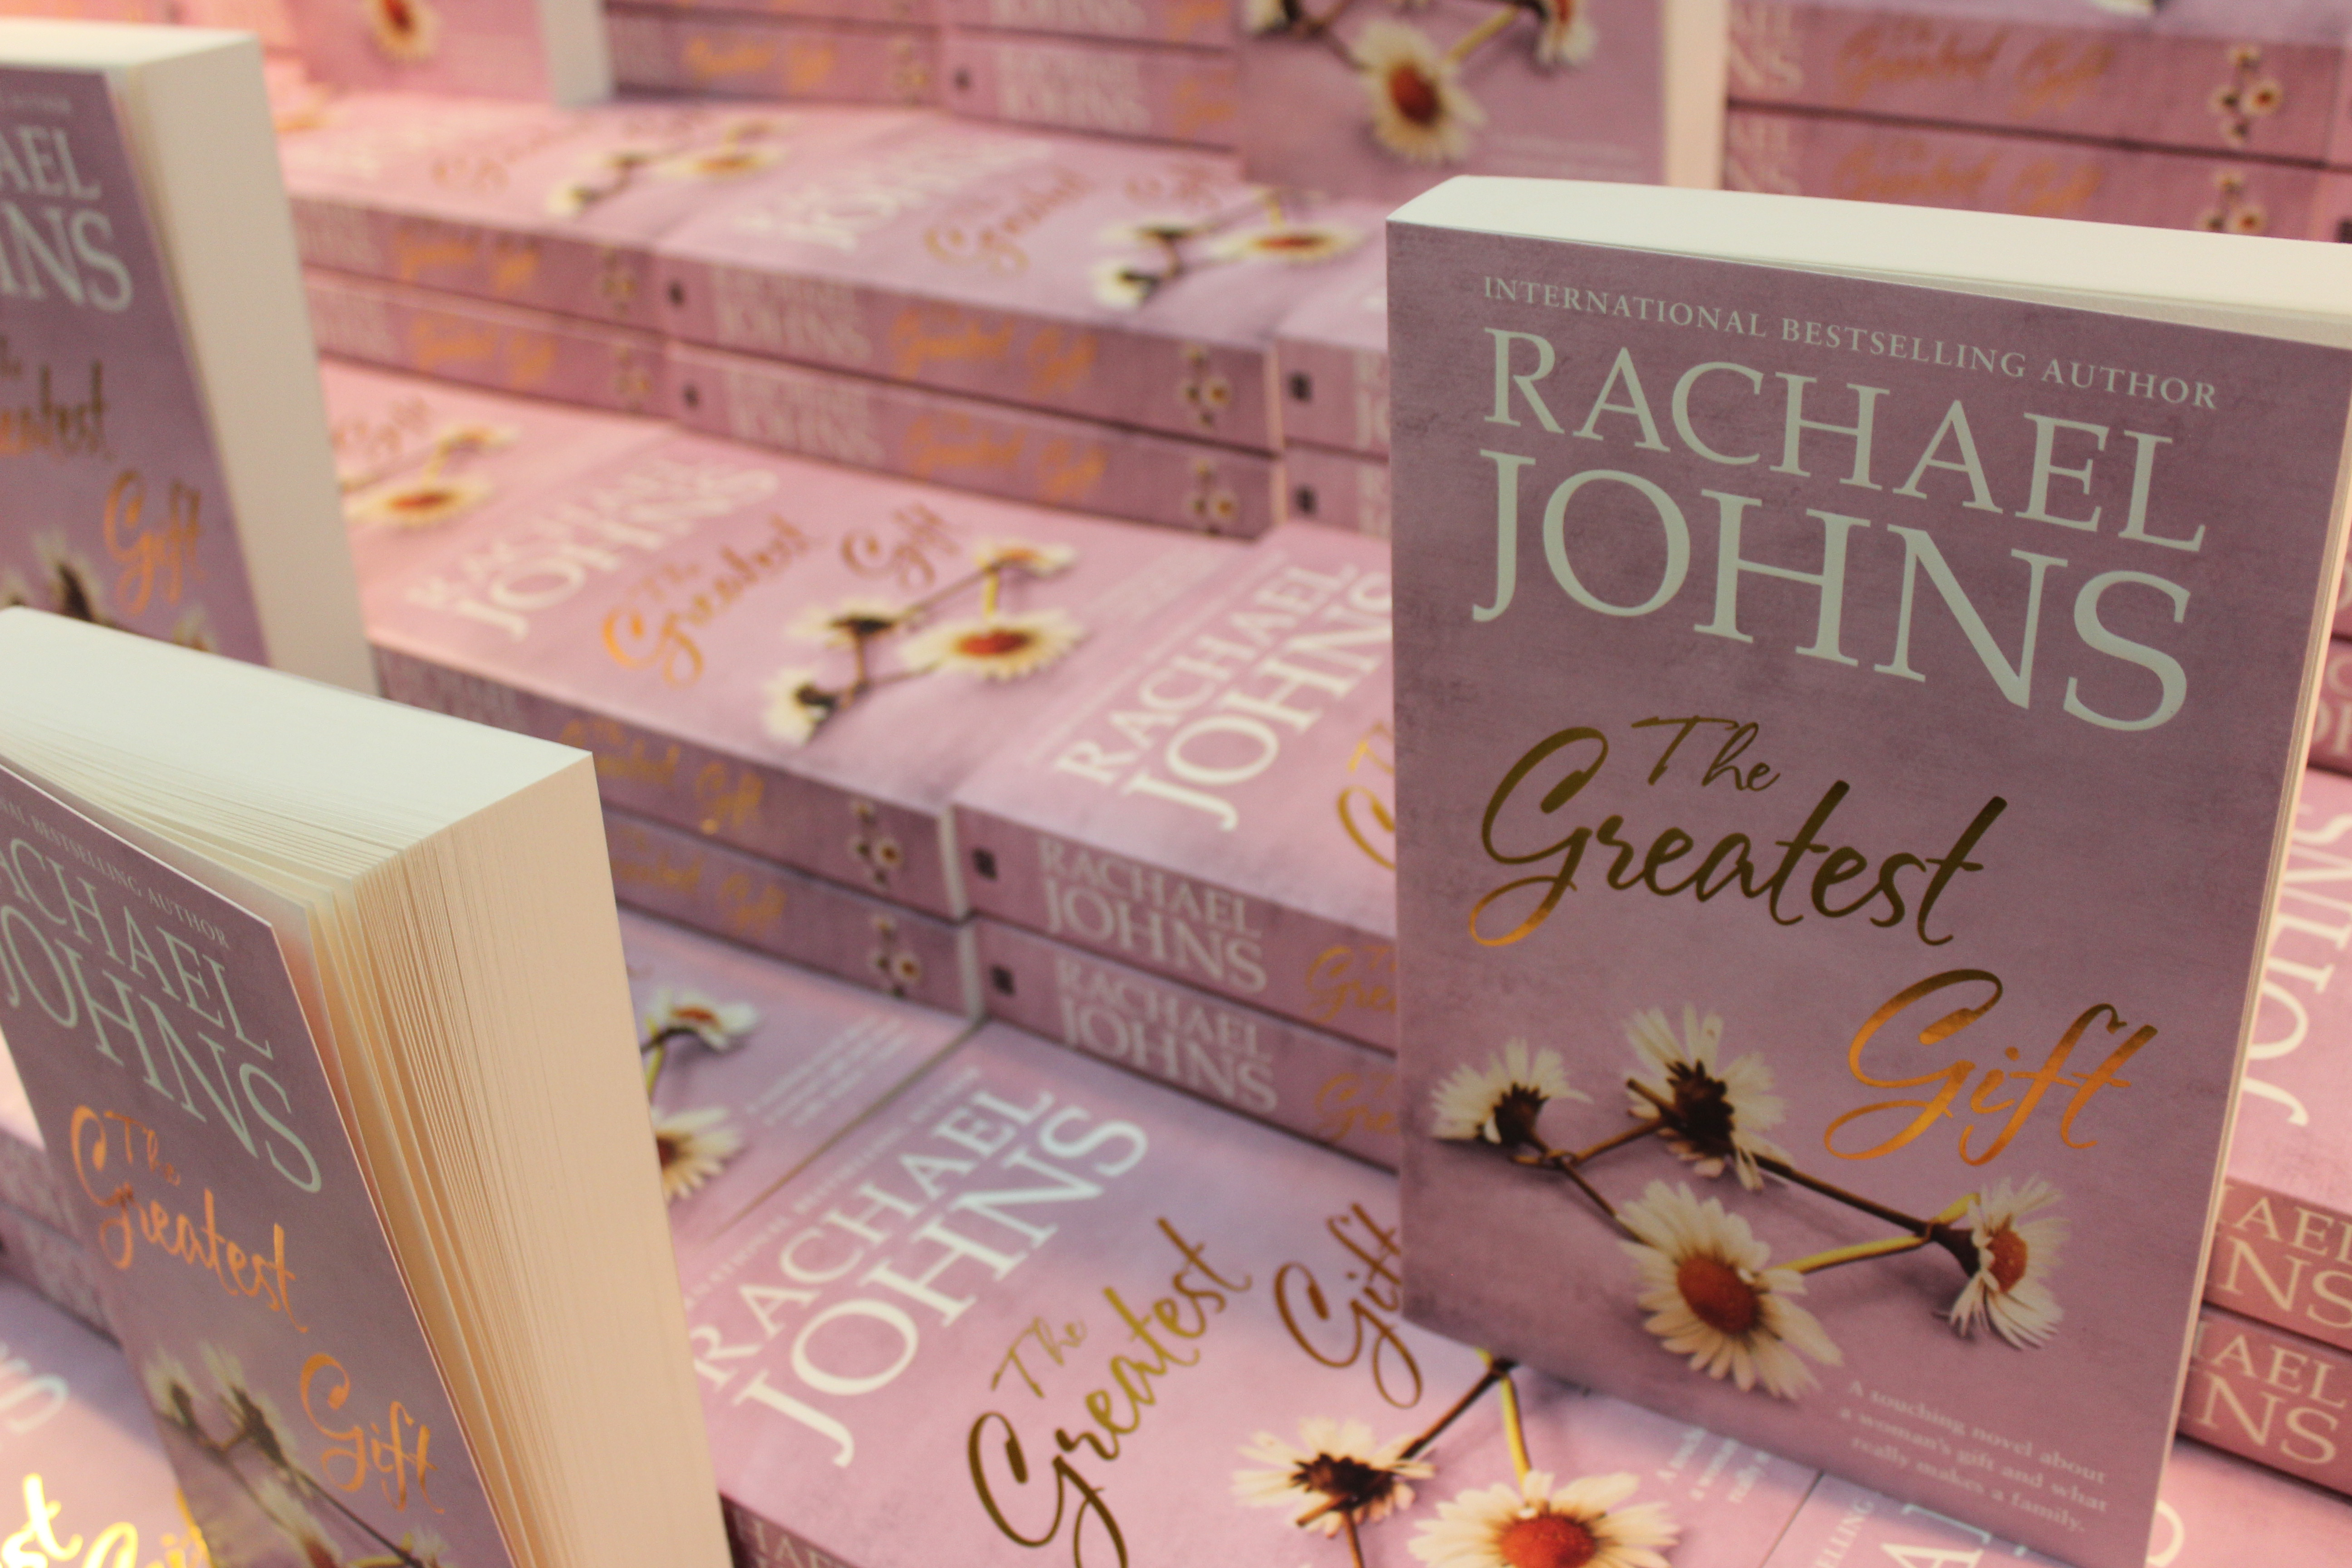 The Greatest Gift by Rachael Johns.